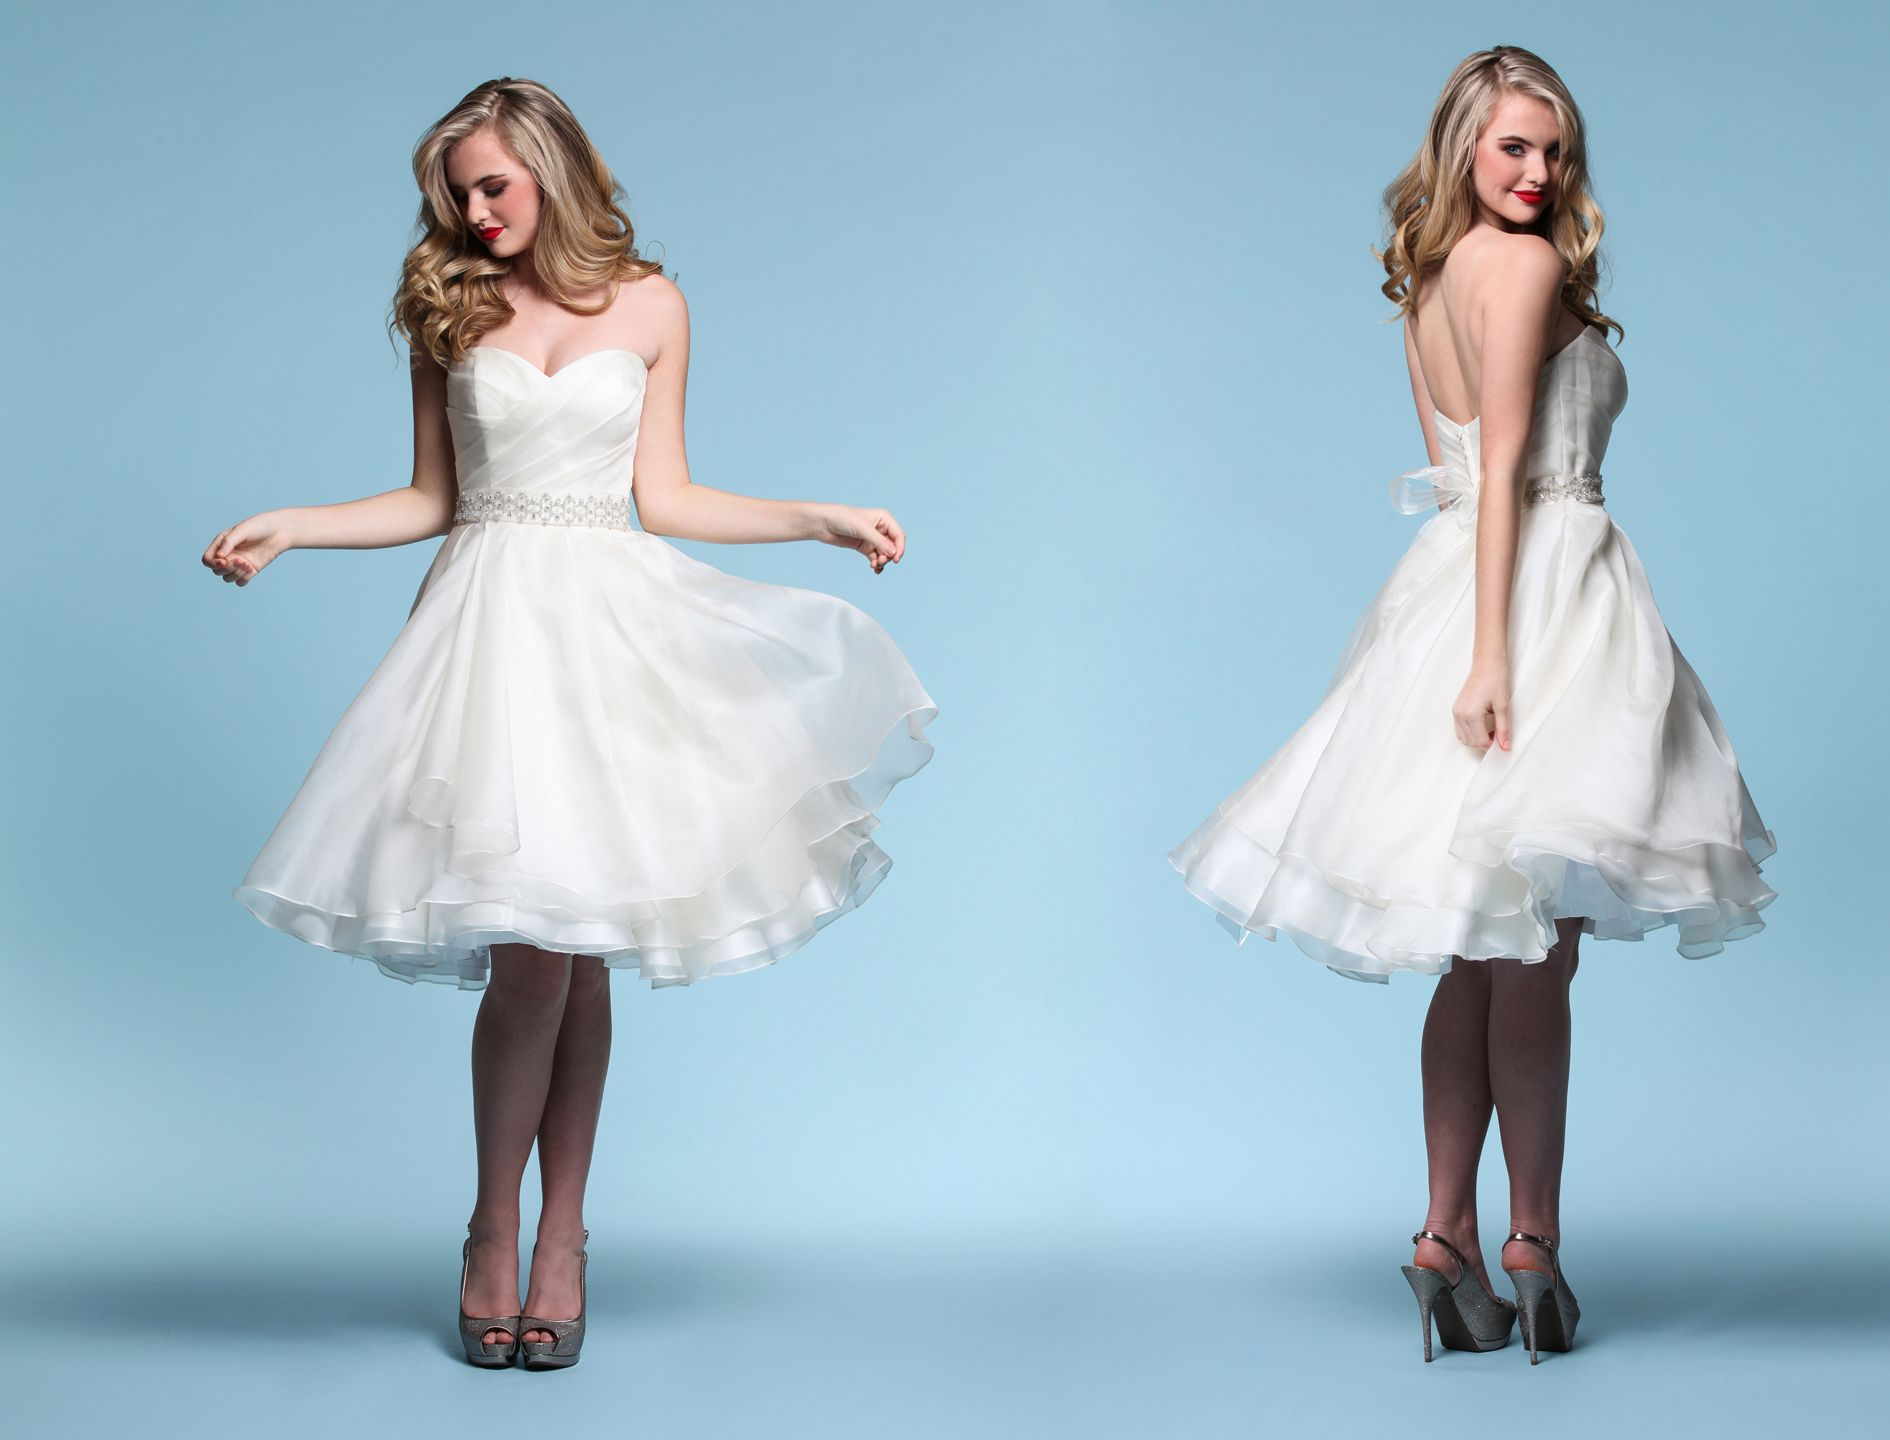 Sweet Kelly Chase Couture Naples Fl Bridal Wedding Bridal Couture Bridal Gowns Chic Wedding Dresses